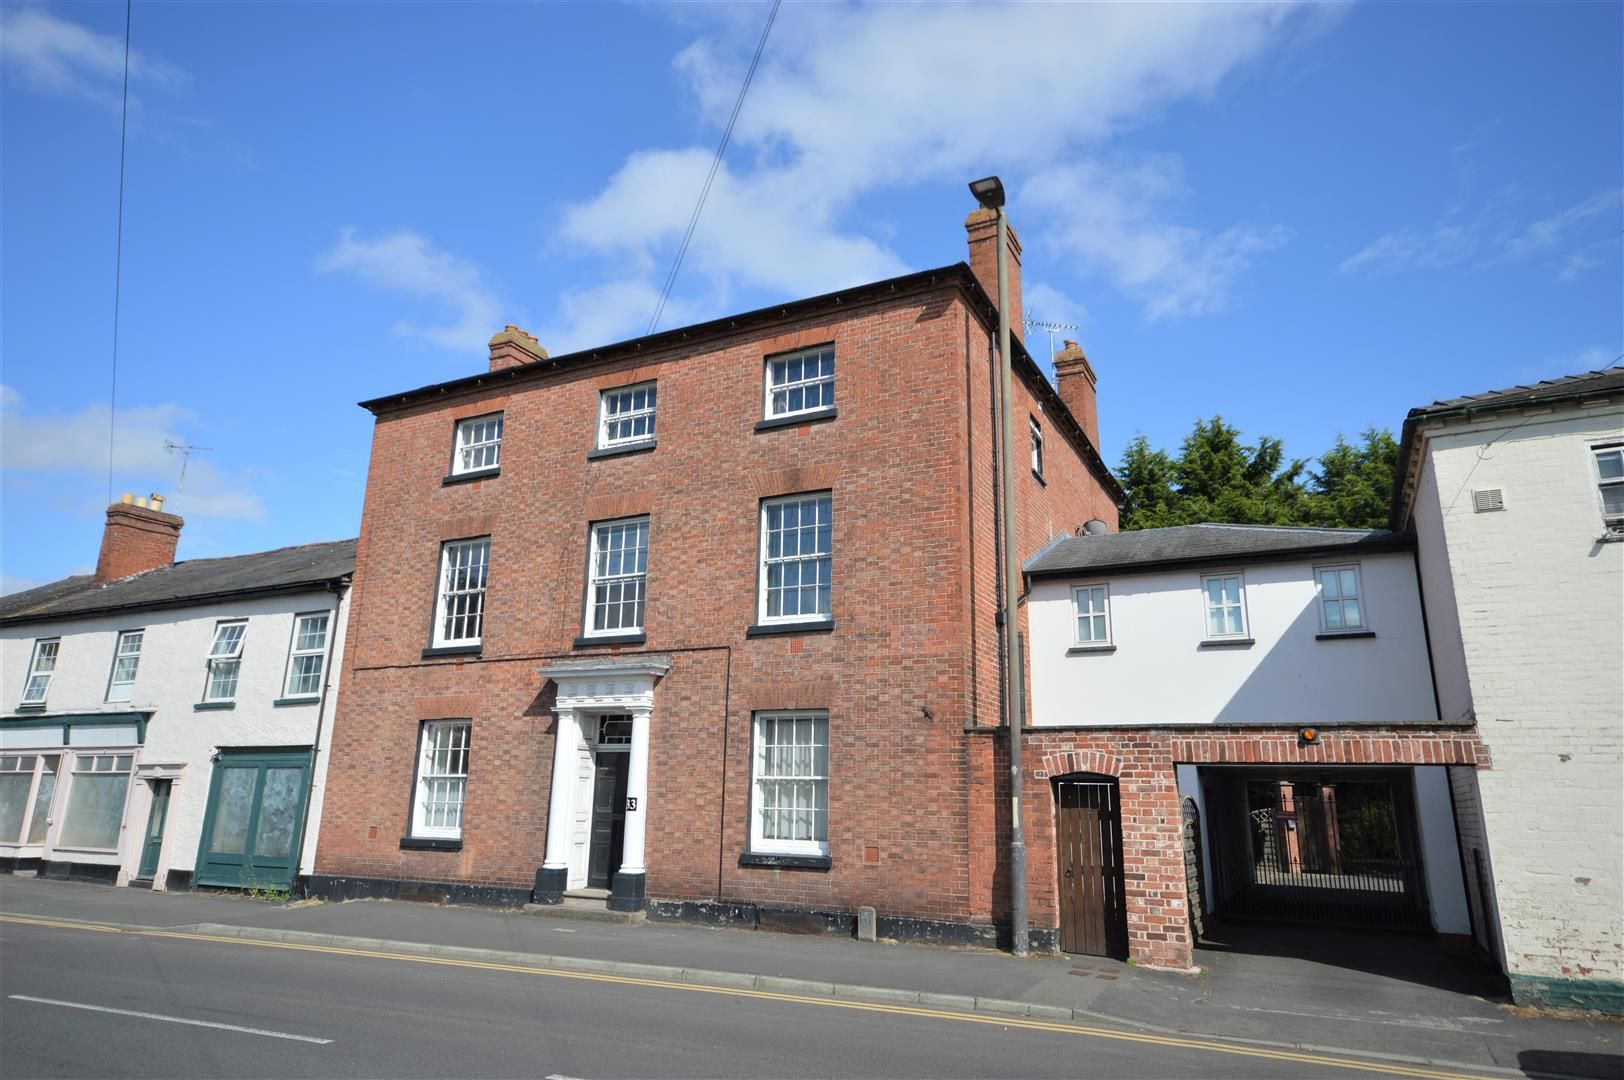 1 bed flat for sale in Leominster, HR6